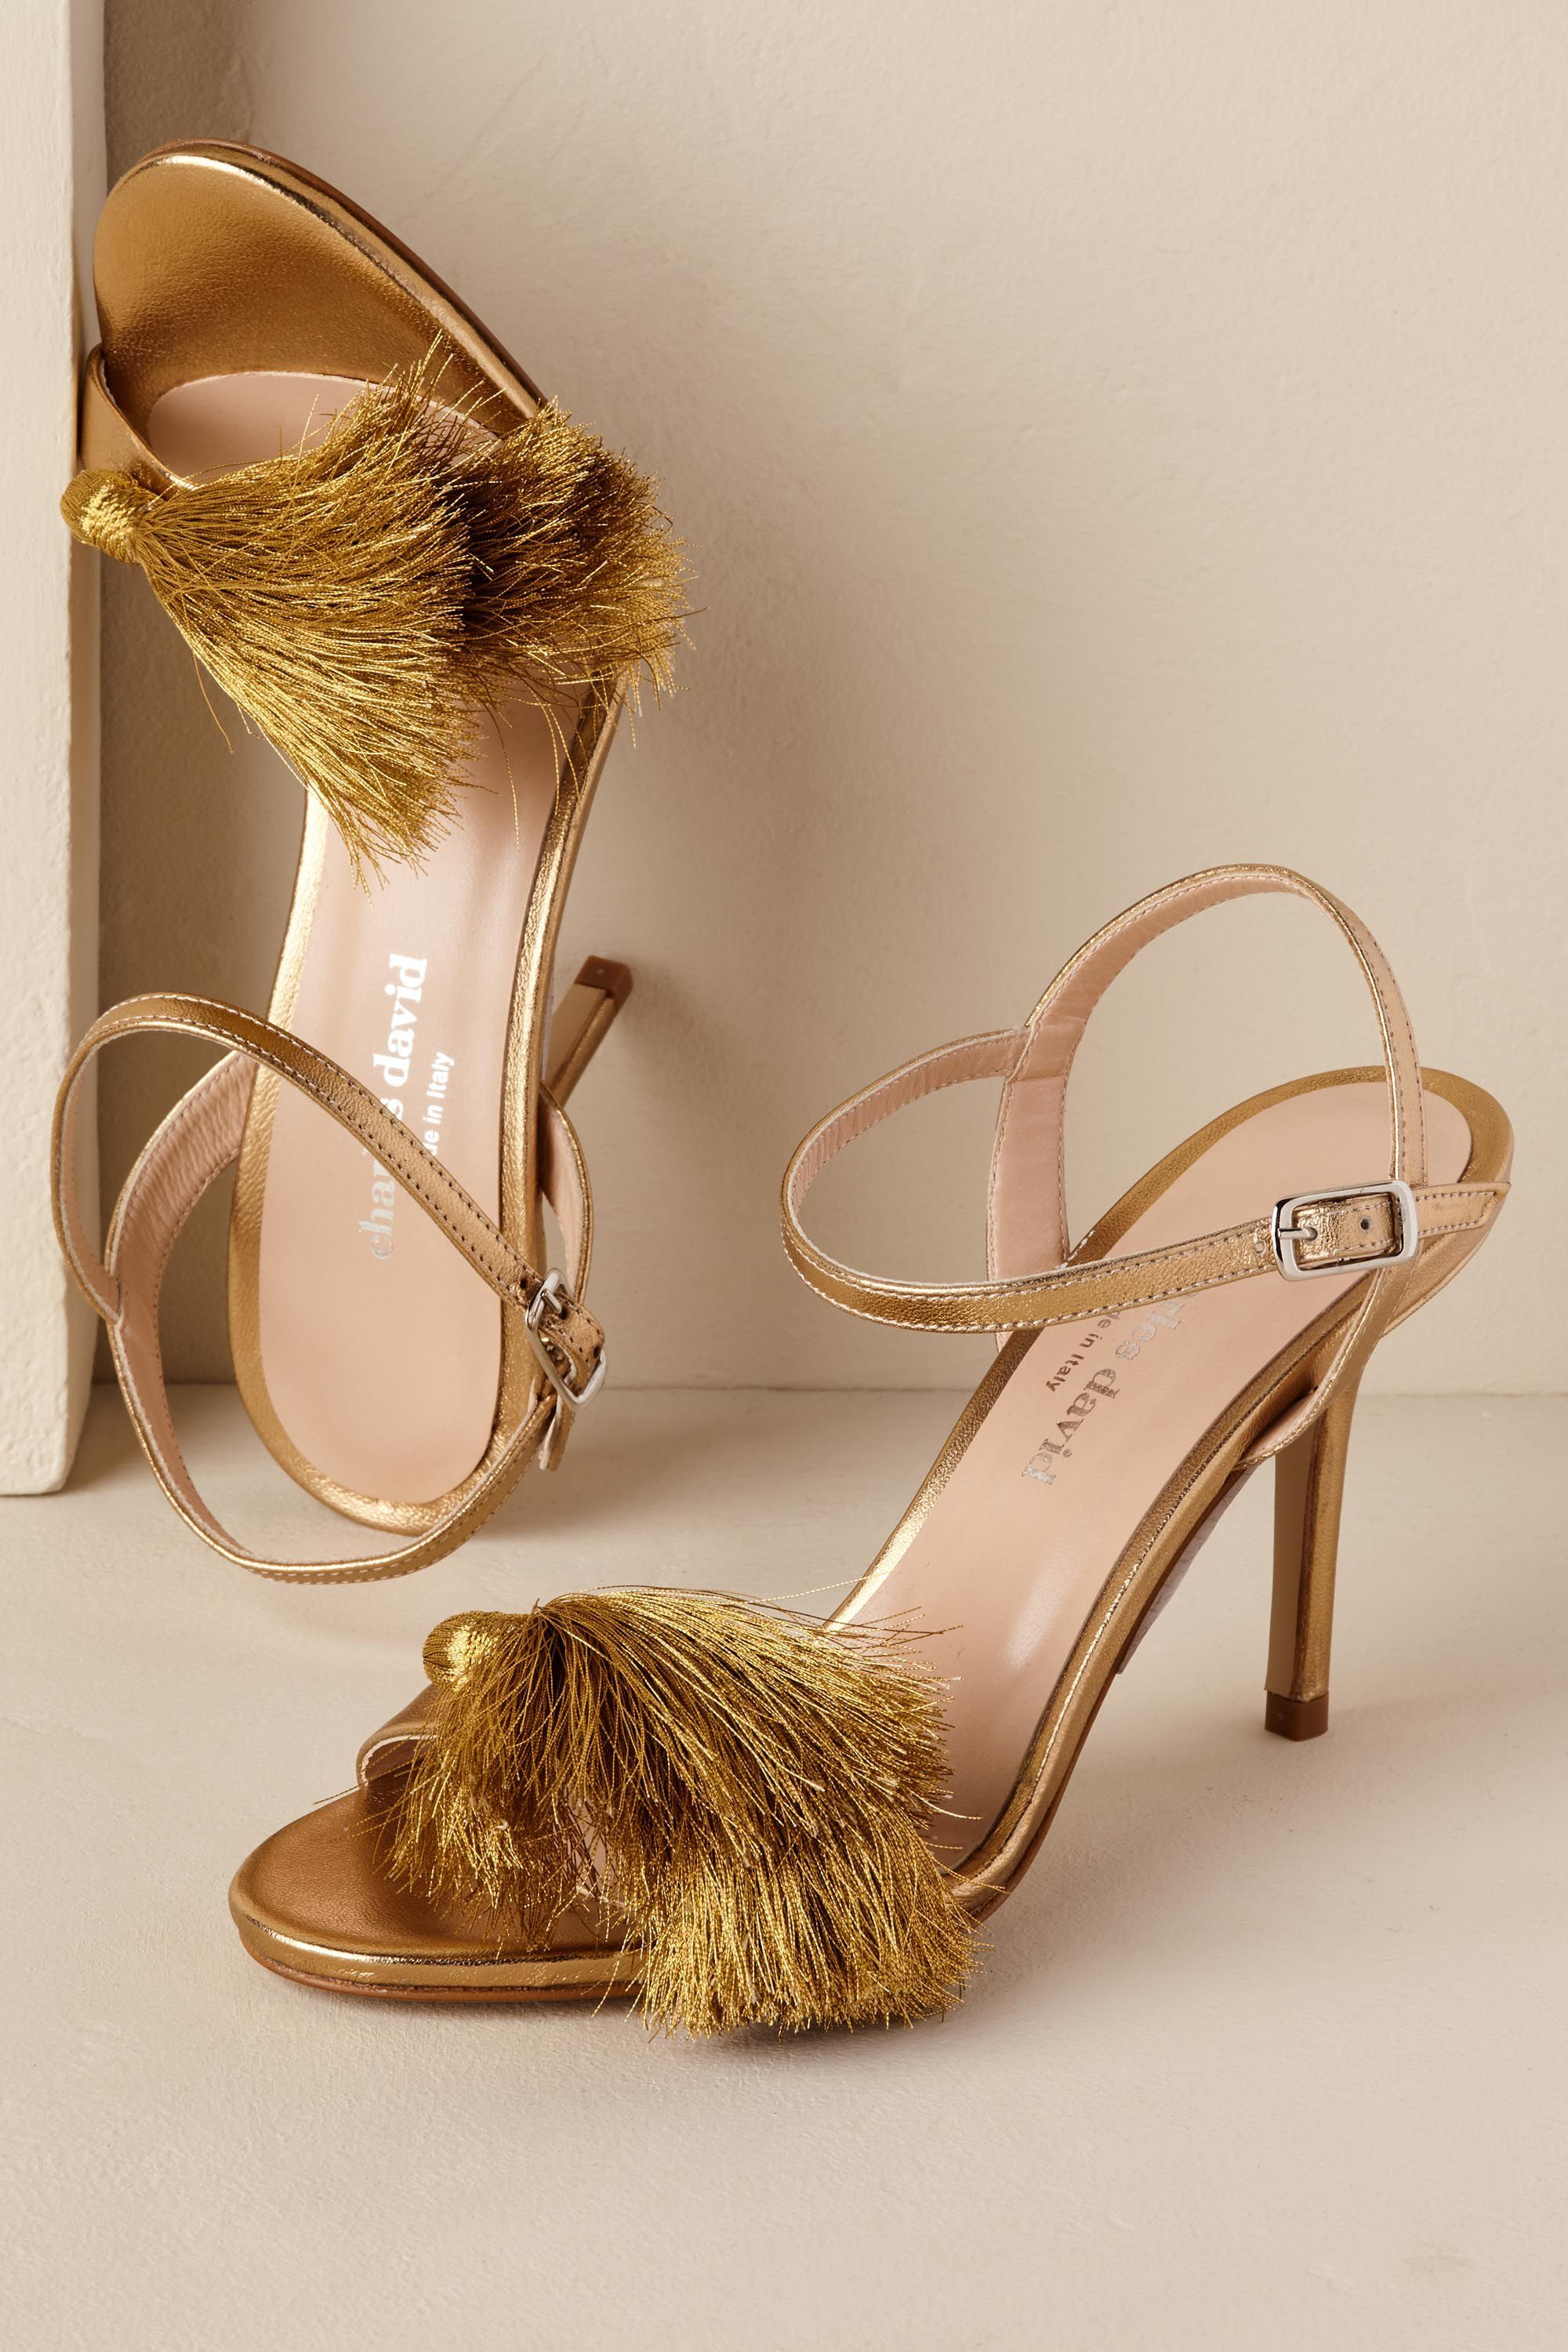 Bhldn S Charles David Gold Fringe Heels In Gold Accessory To